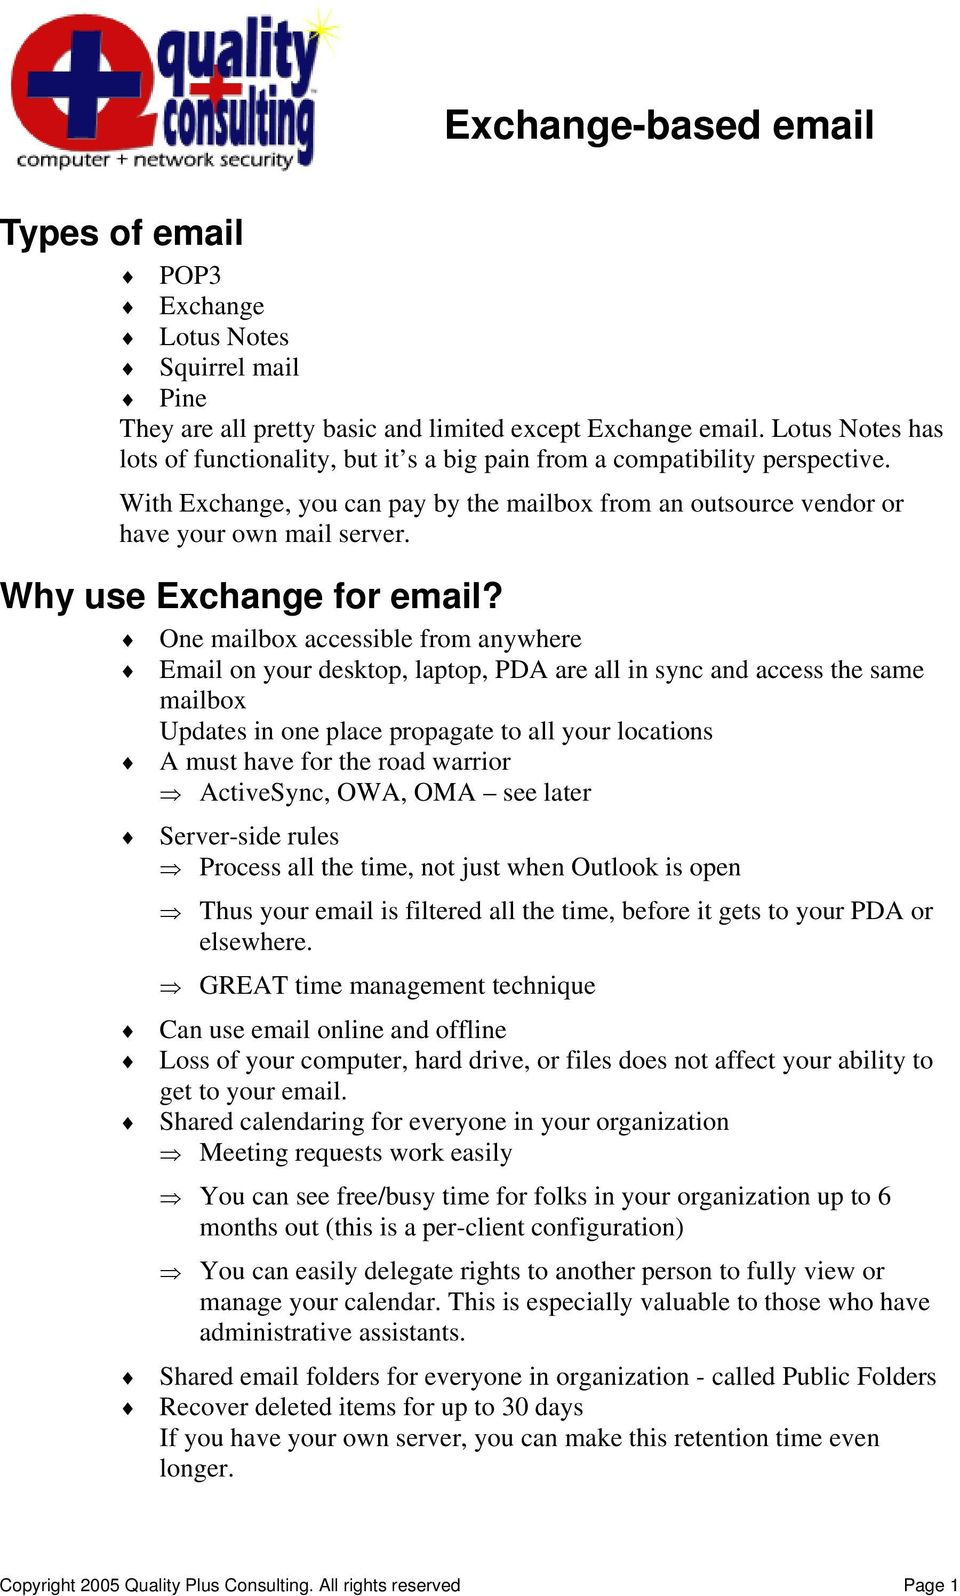 Why use Exchange for email?